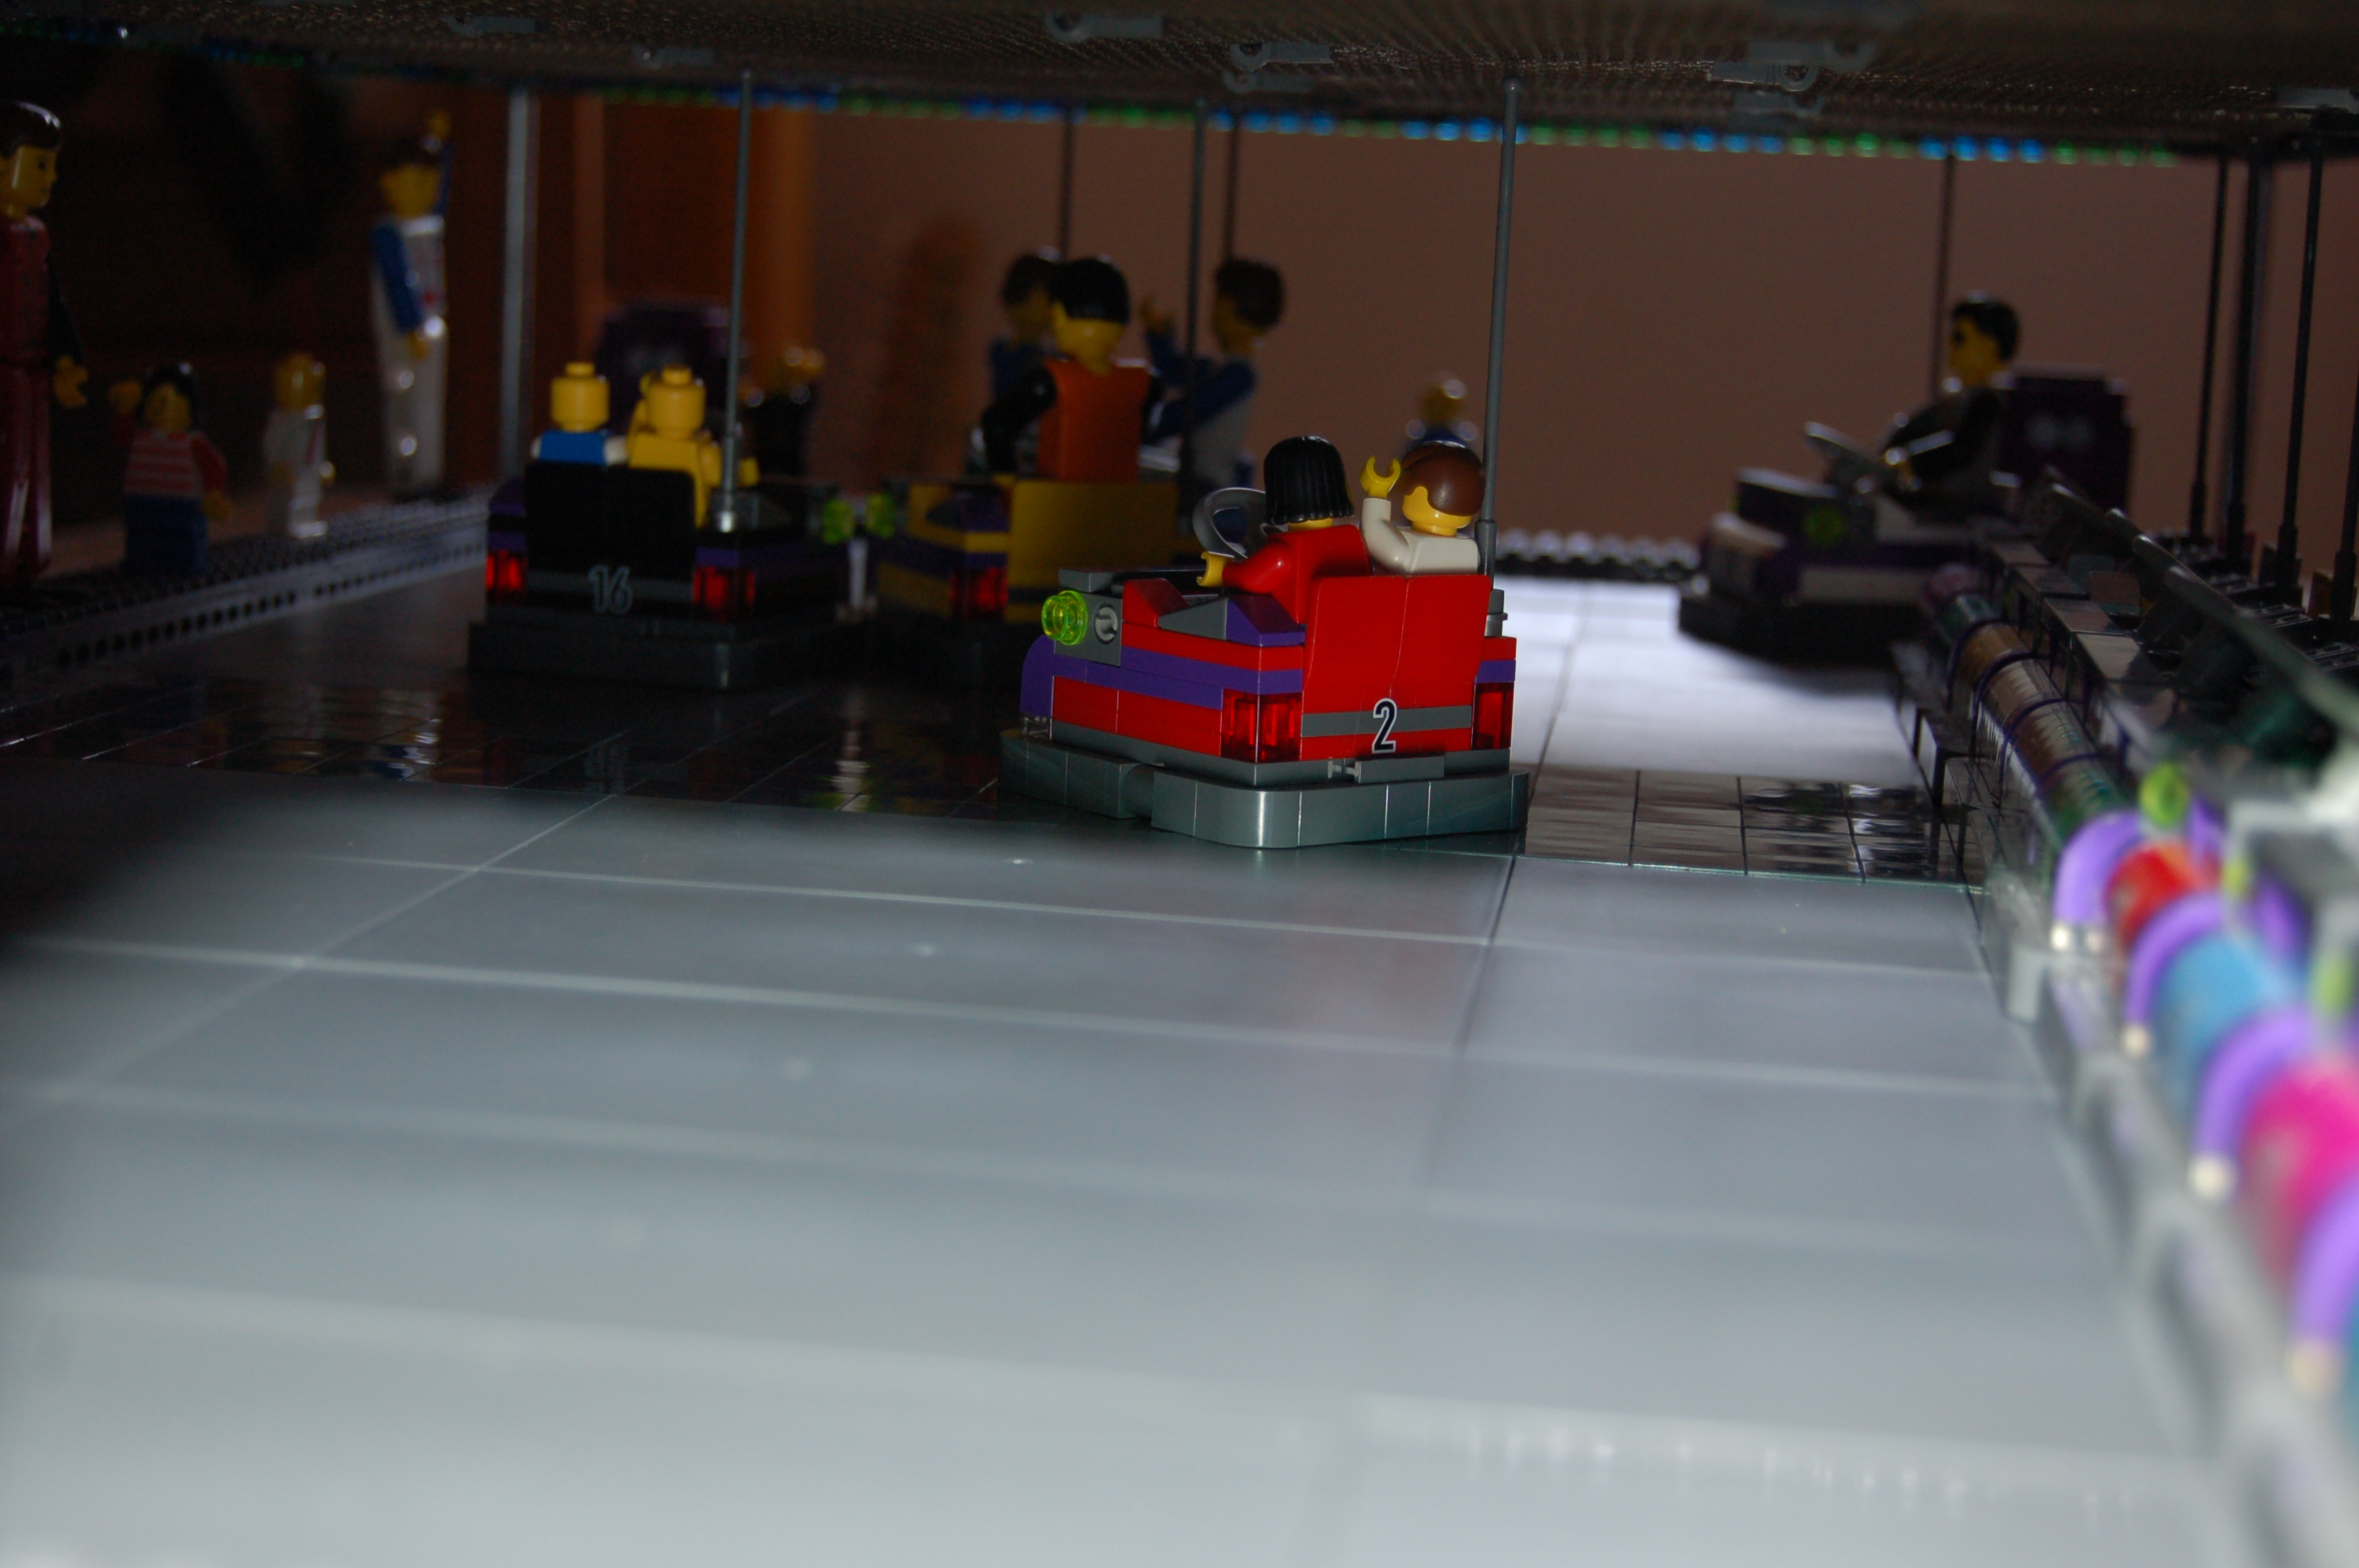 a_crashcarbumpercars_034.jpg